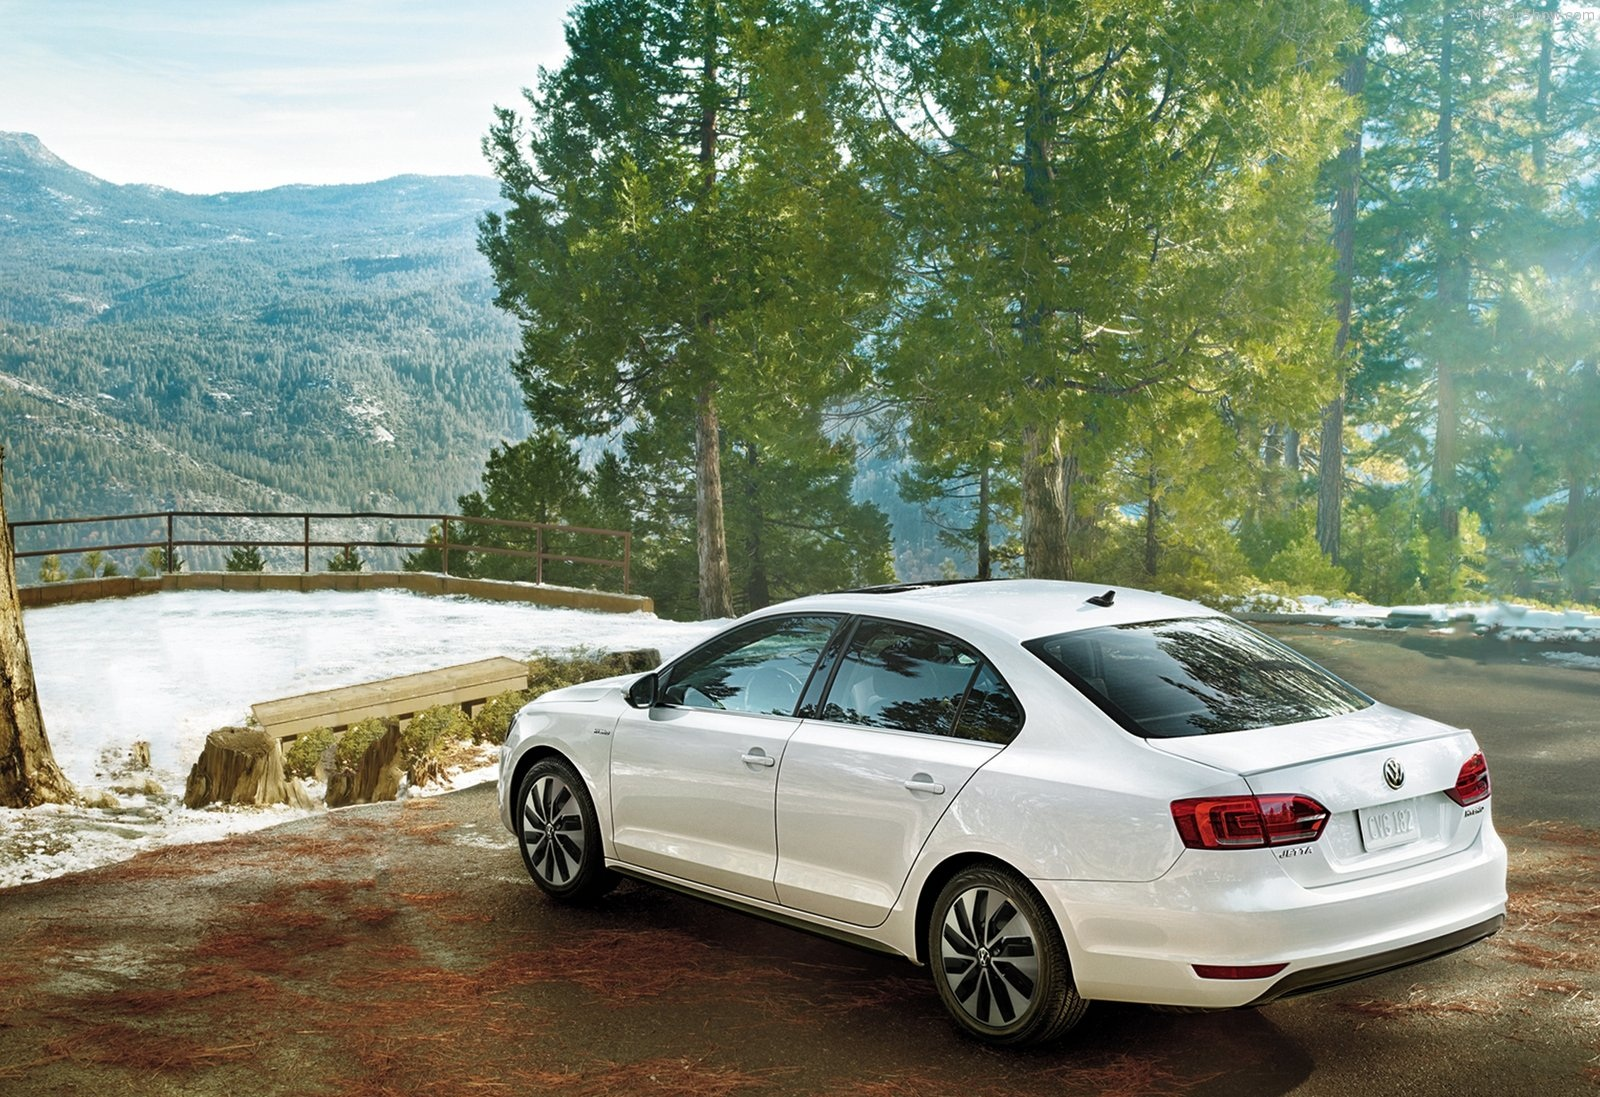 pondering cars volkswagen jetta hybrid sets world speed record Volkswagen Jetta Body Parts another difference is the tires they are much much wider on the standard model pared to the record breaking car and the final noticeable difference is